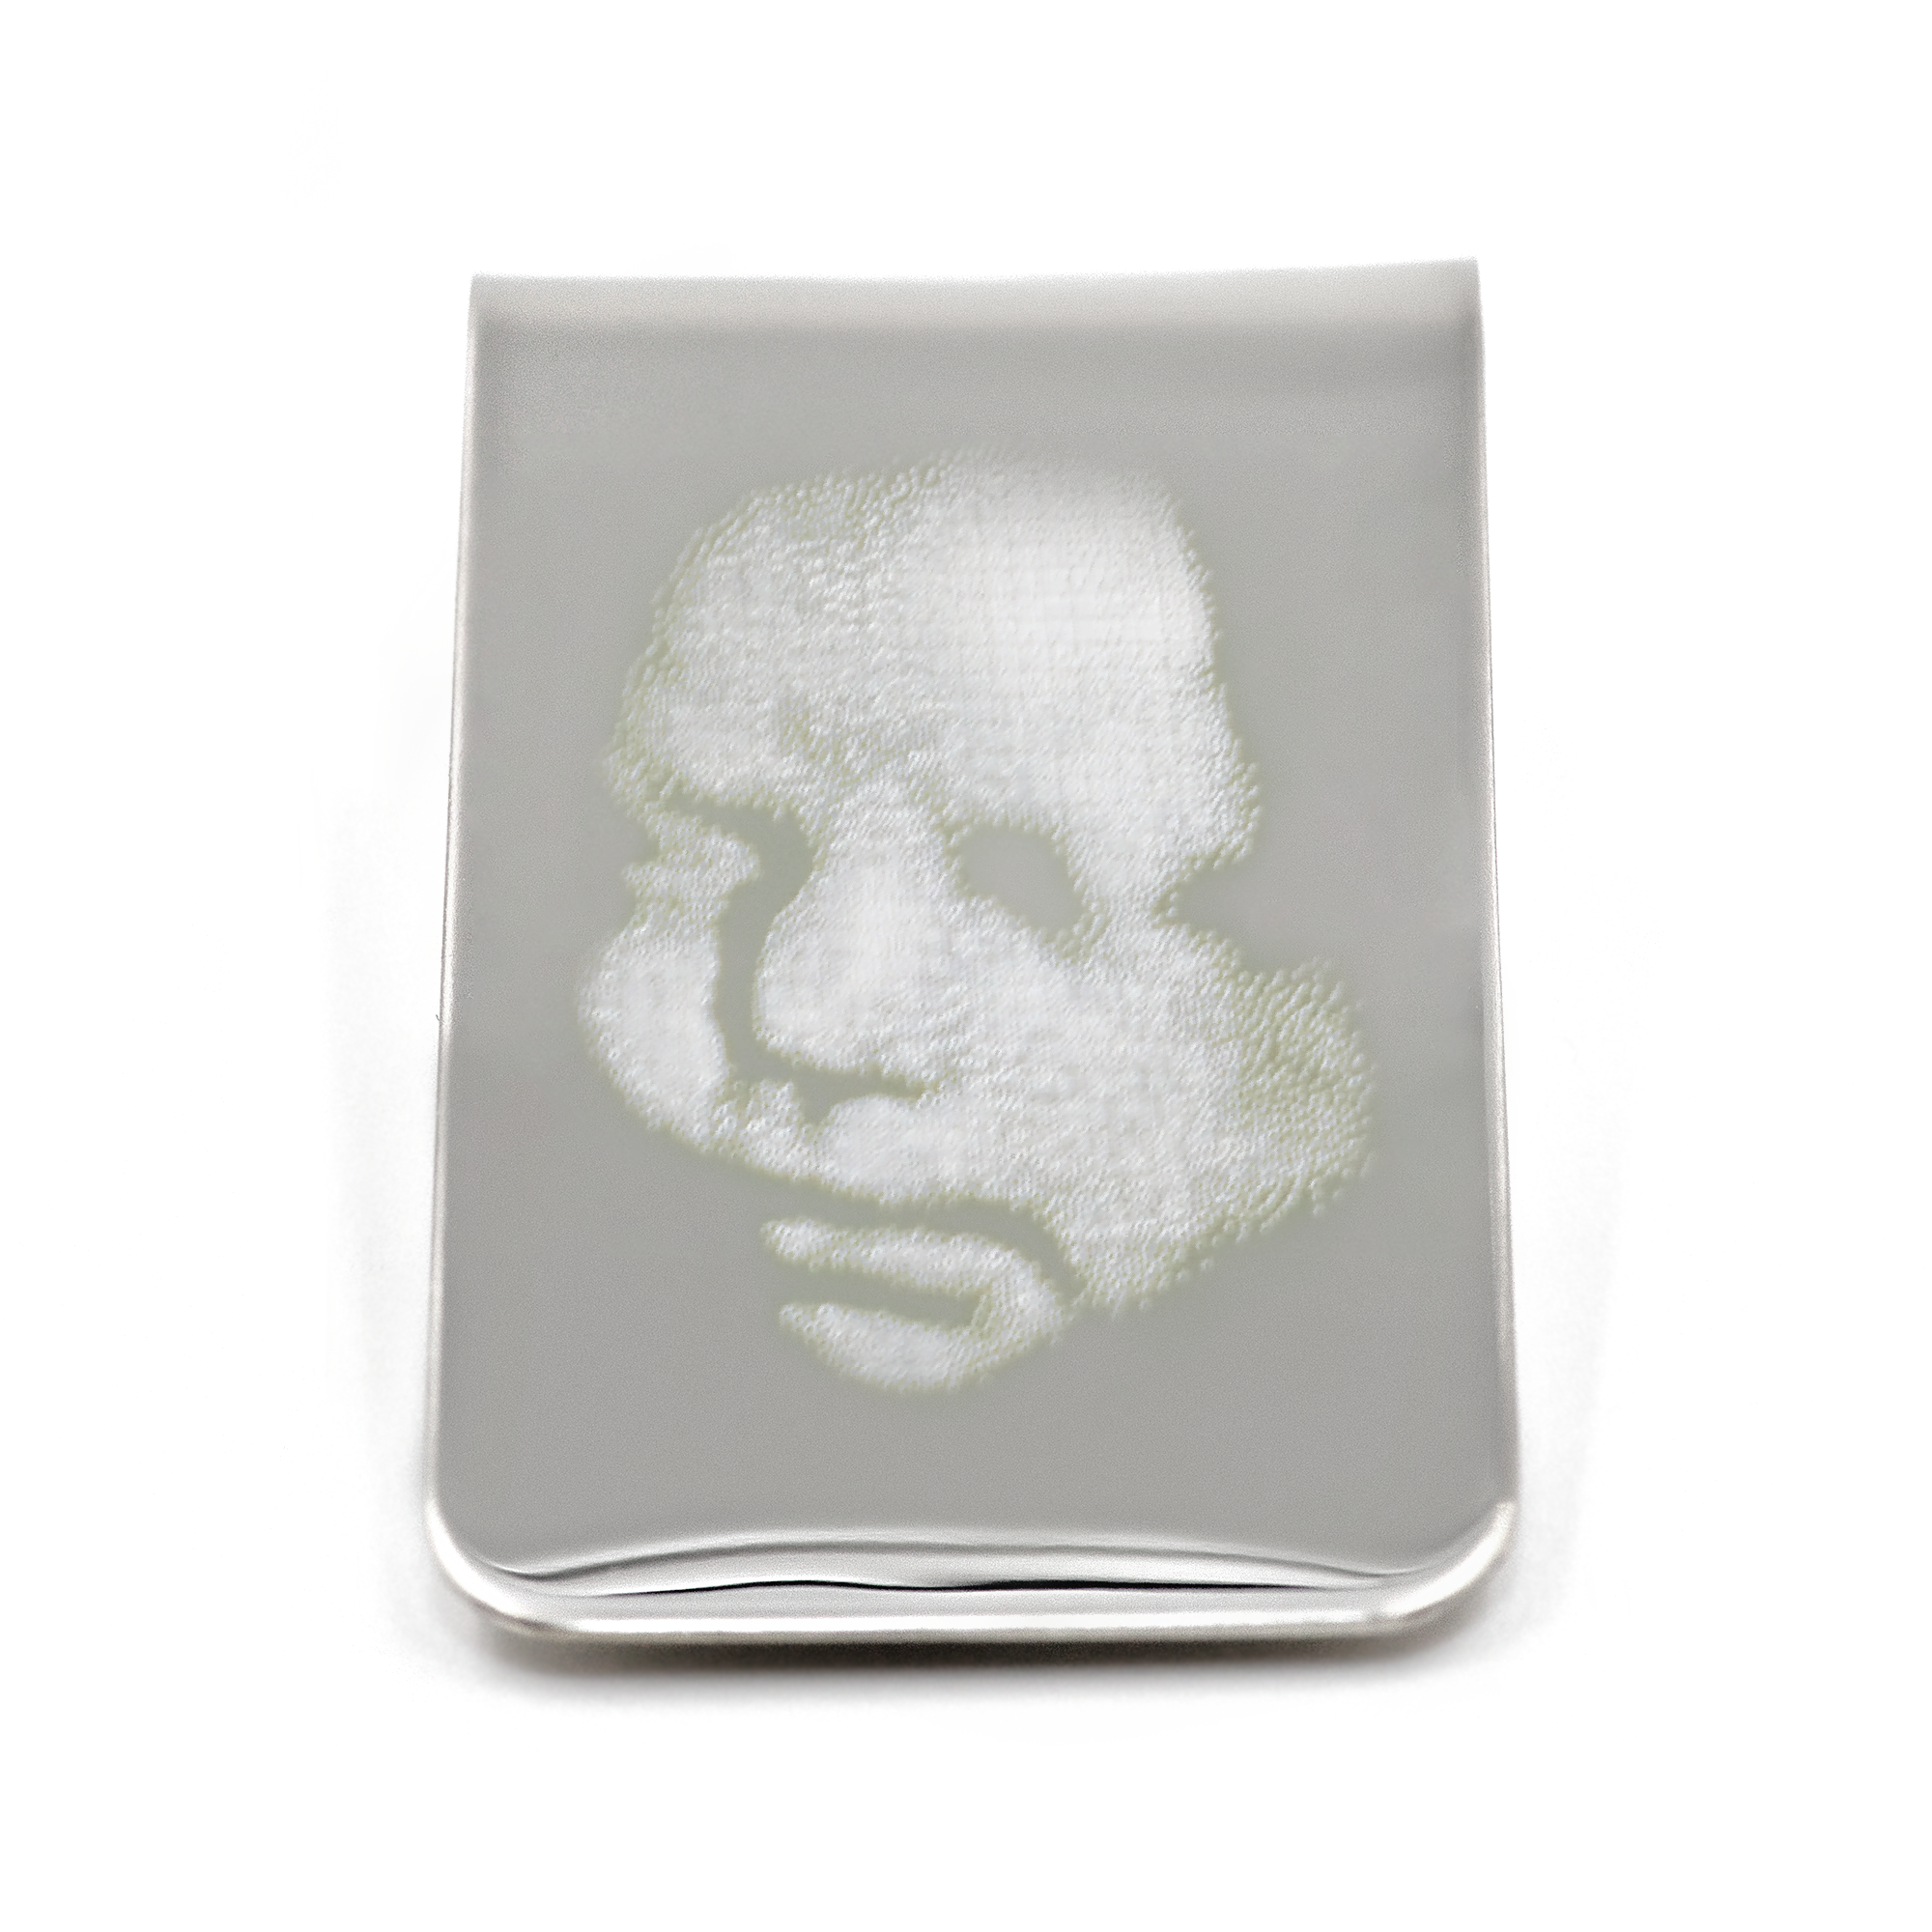 Stainless Steel Photo Money Clip